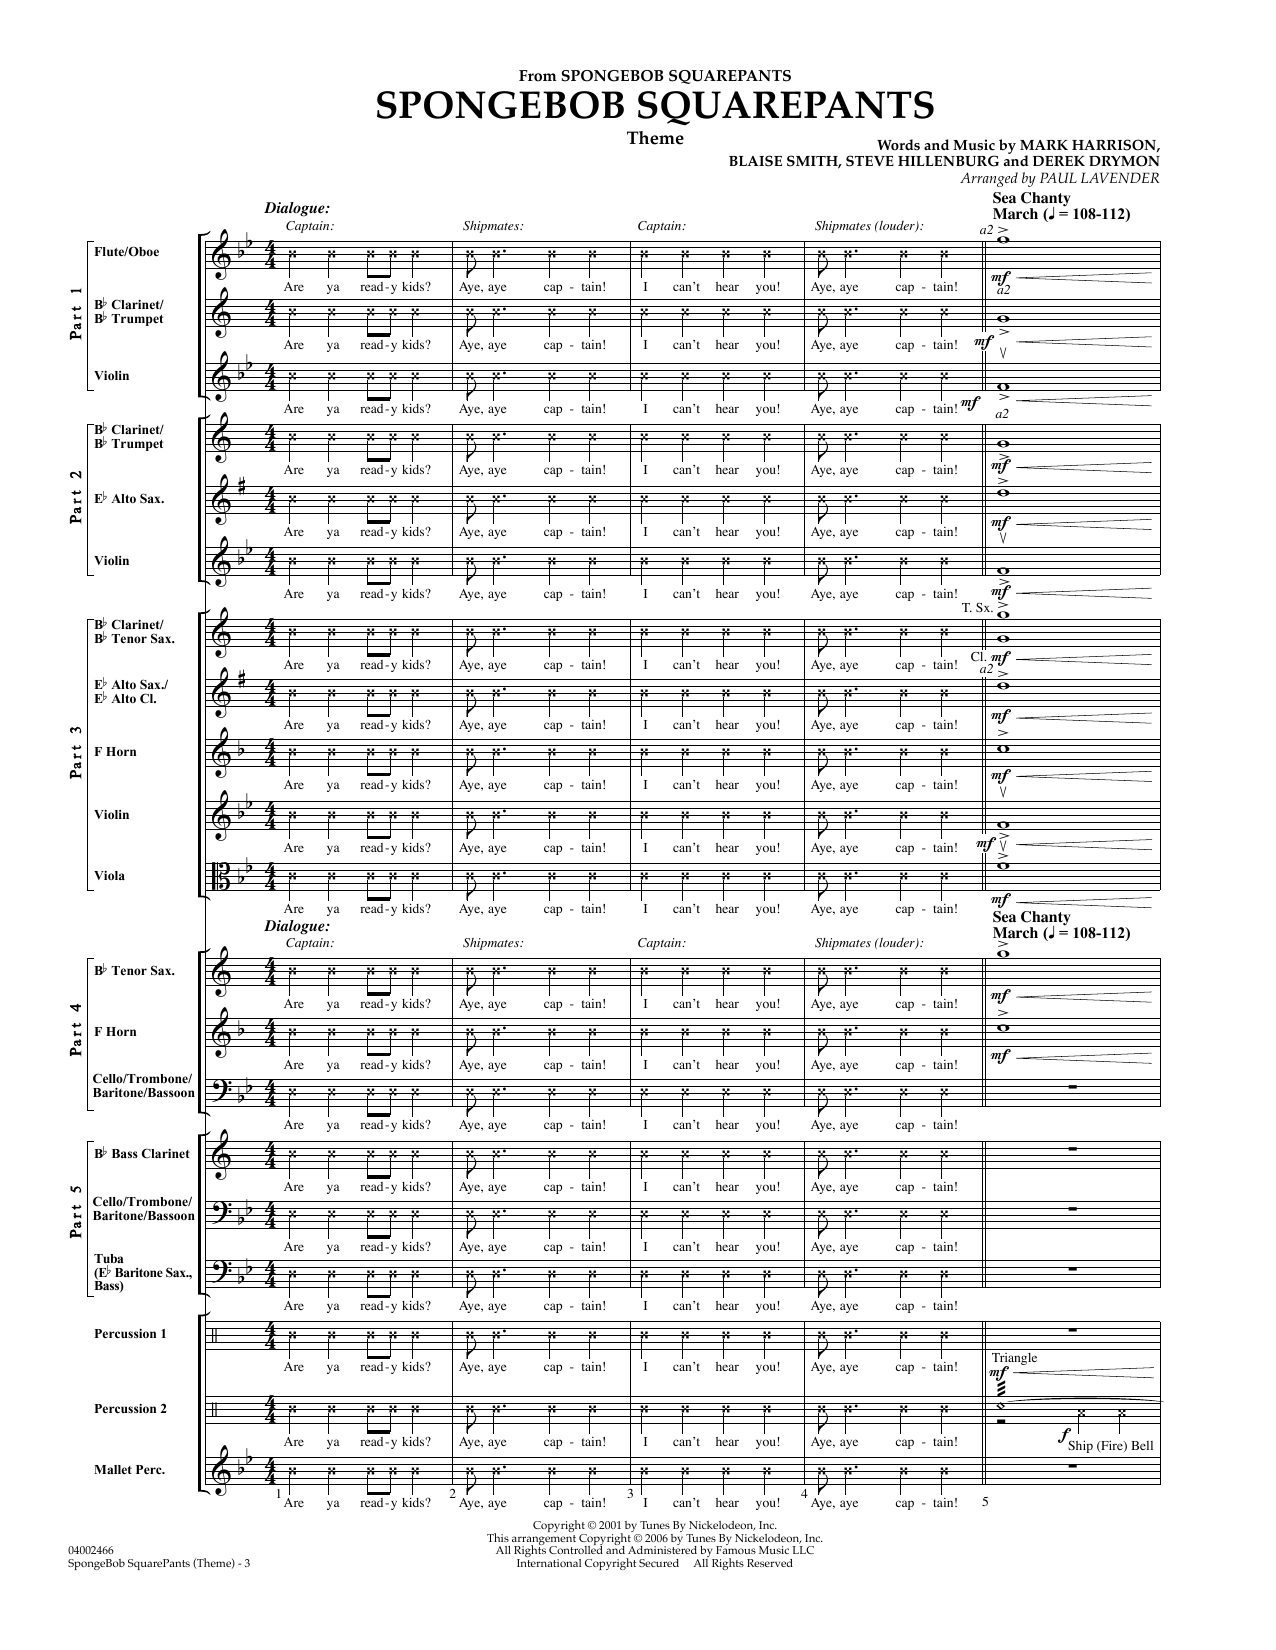 Spongebob Squarepants  (Flex-Band) (COMPLETE) sheet music for concert band by Paul Lavender, Mark Harrison and Steve Hillenburg. Score Image Preview.